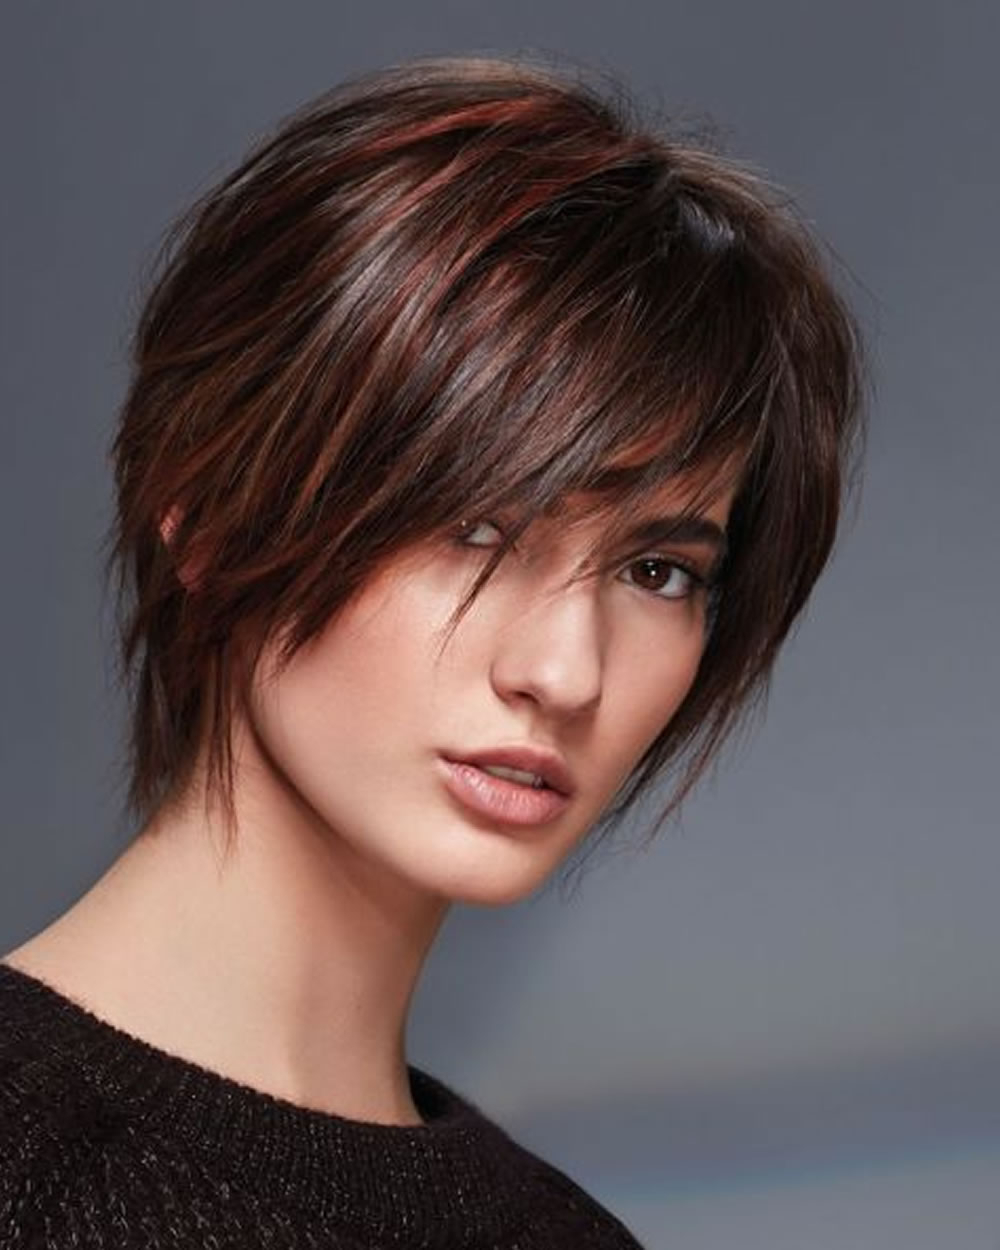 Hey Ladies! Best 13 Short Haircuts For Round Faces Inspirations You With Regard To Super Short Hairstyles For Round Faces (View 16 of 25)